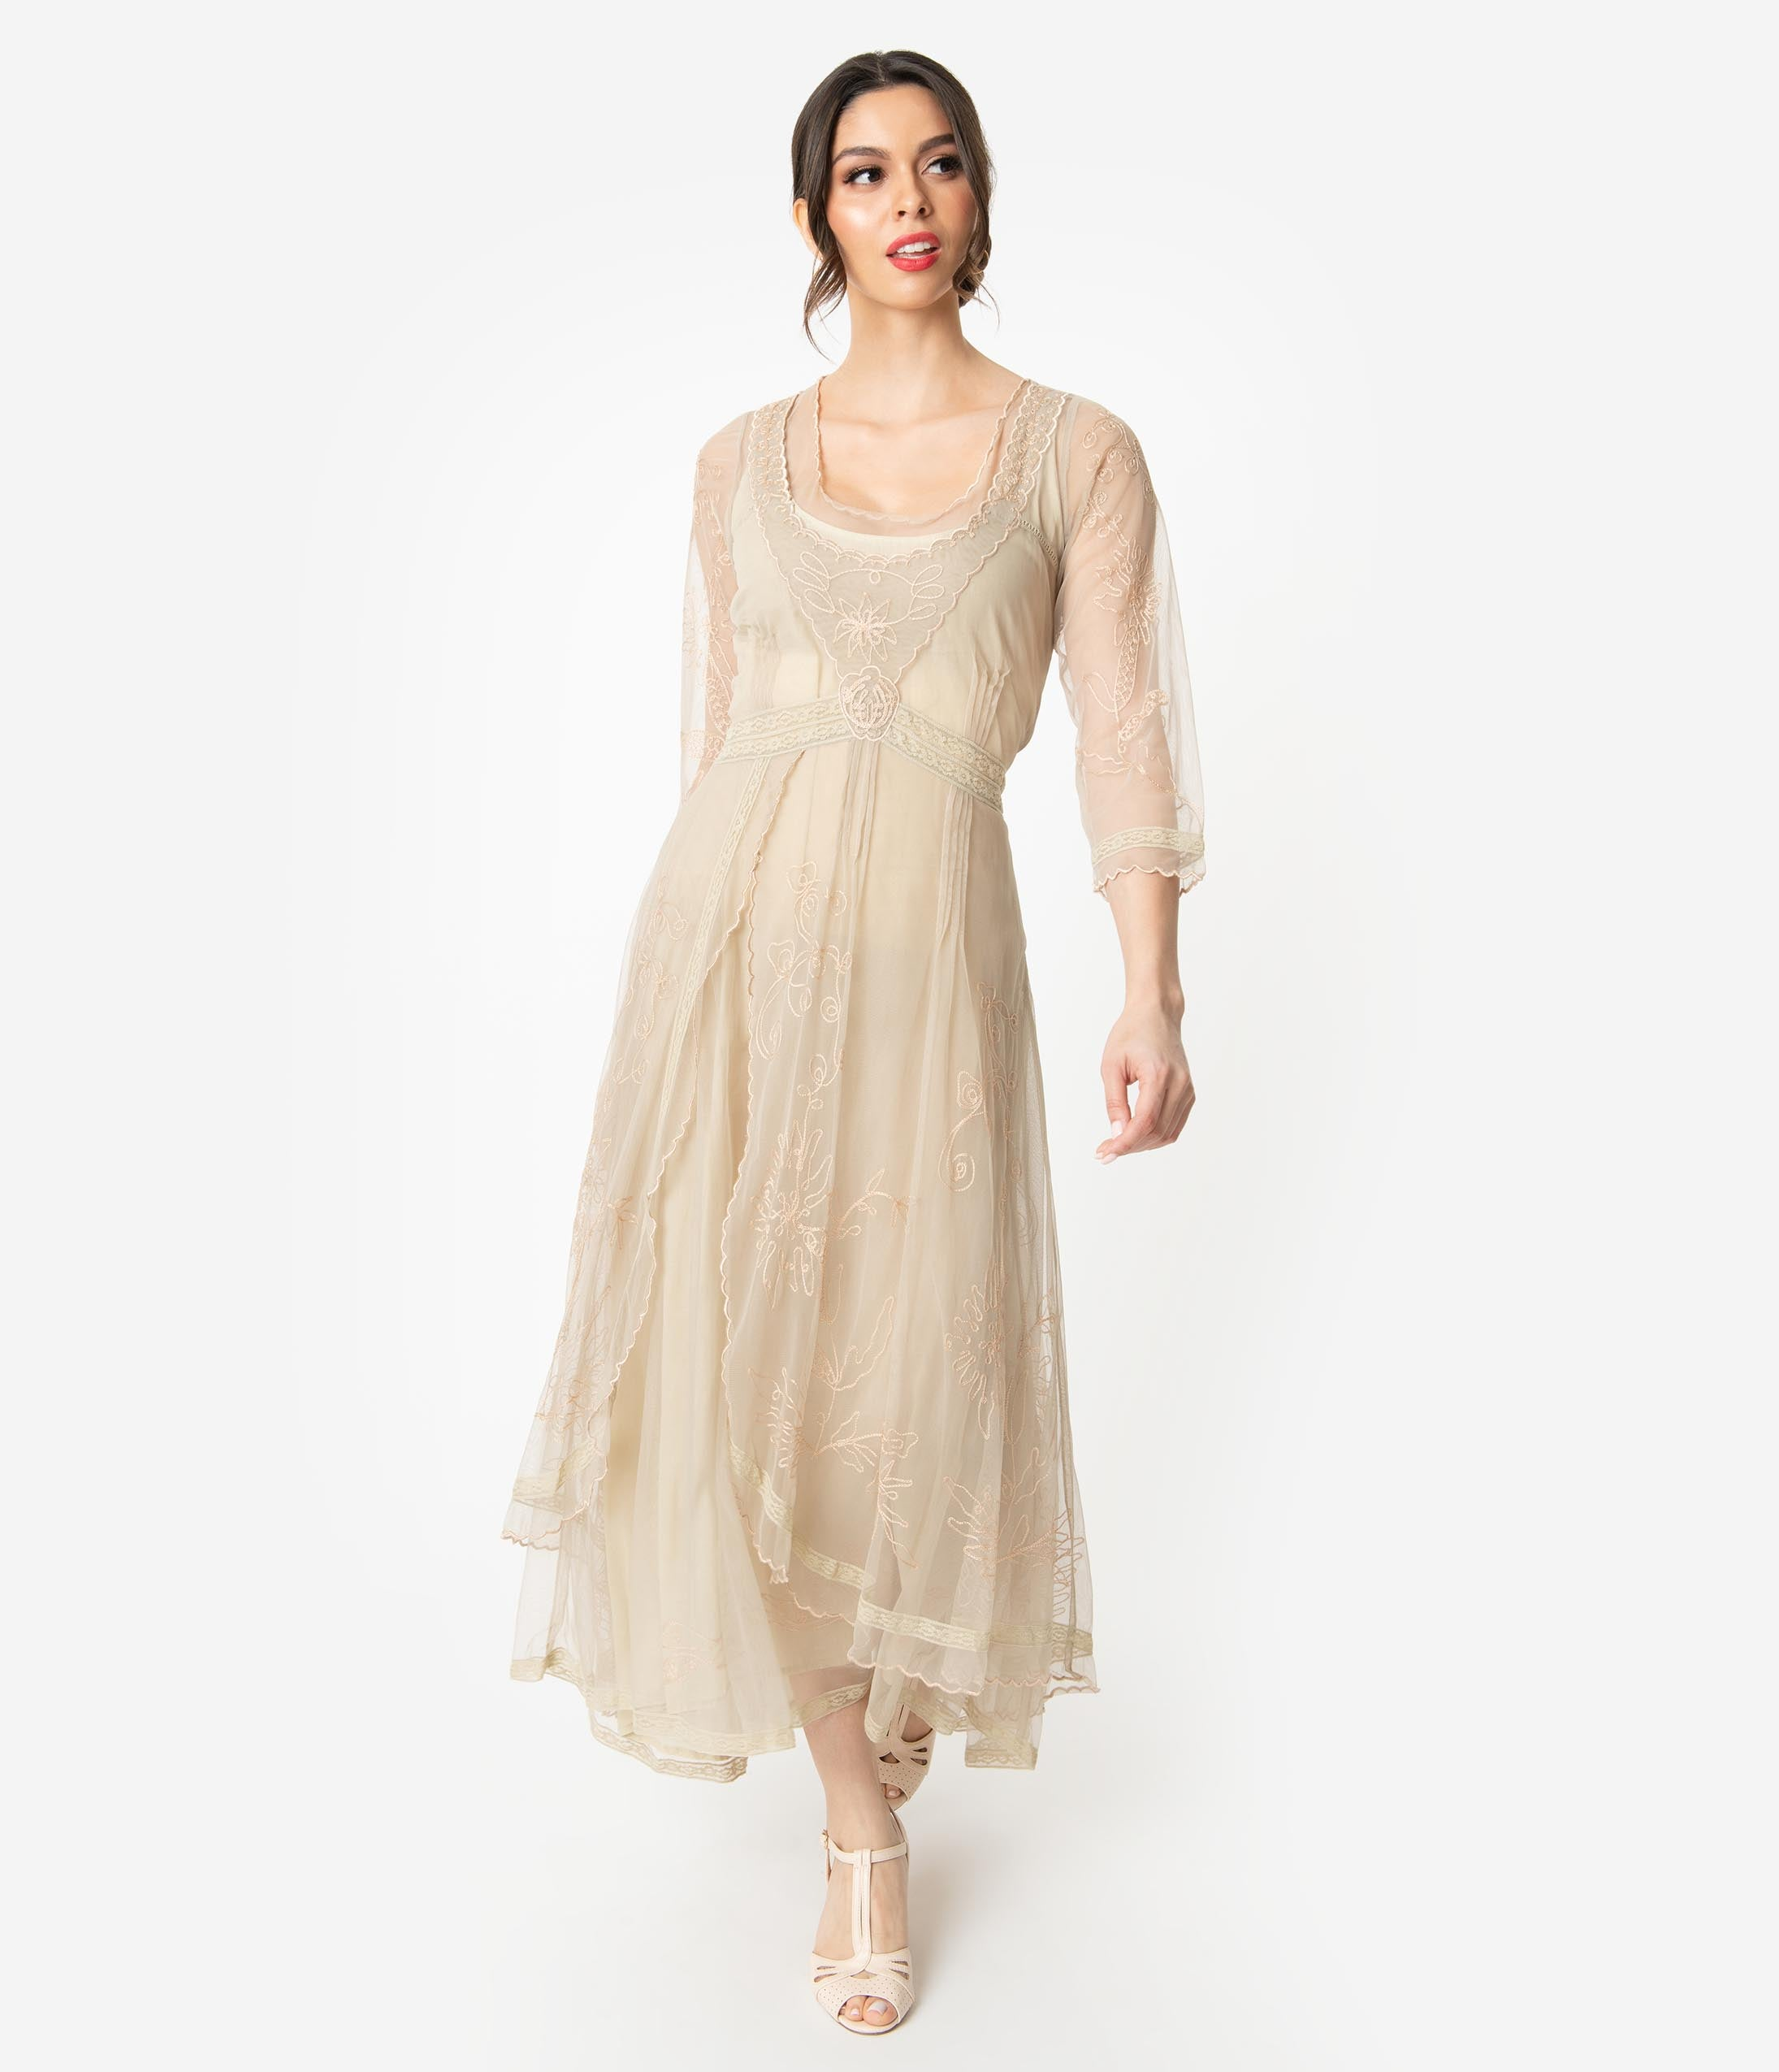 1900-1910s Clothing Vintage Cream Embroidered Tulle Downton Abbey Edwardian Tea Party Flapper Dress $258.00 AT vintagedancer.com